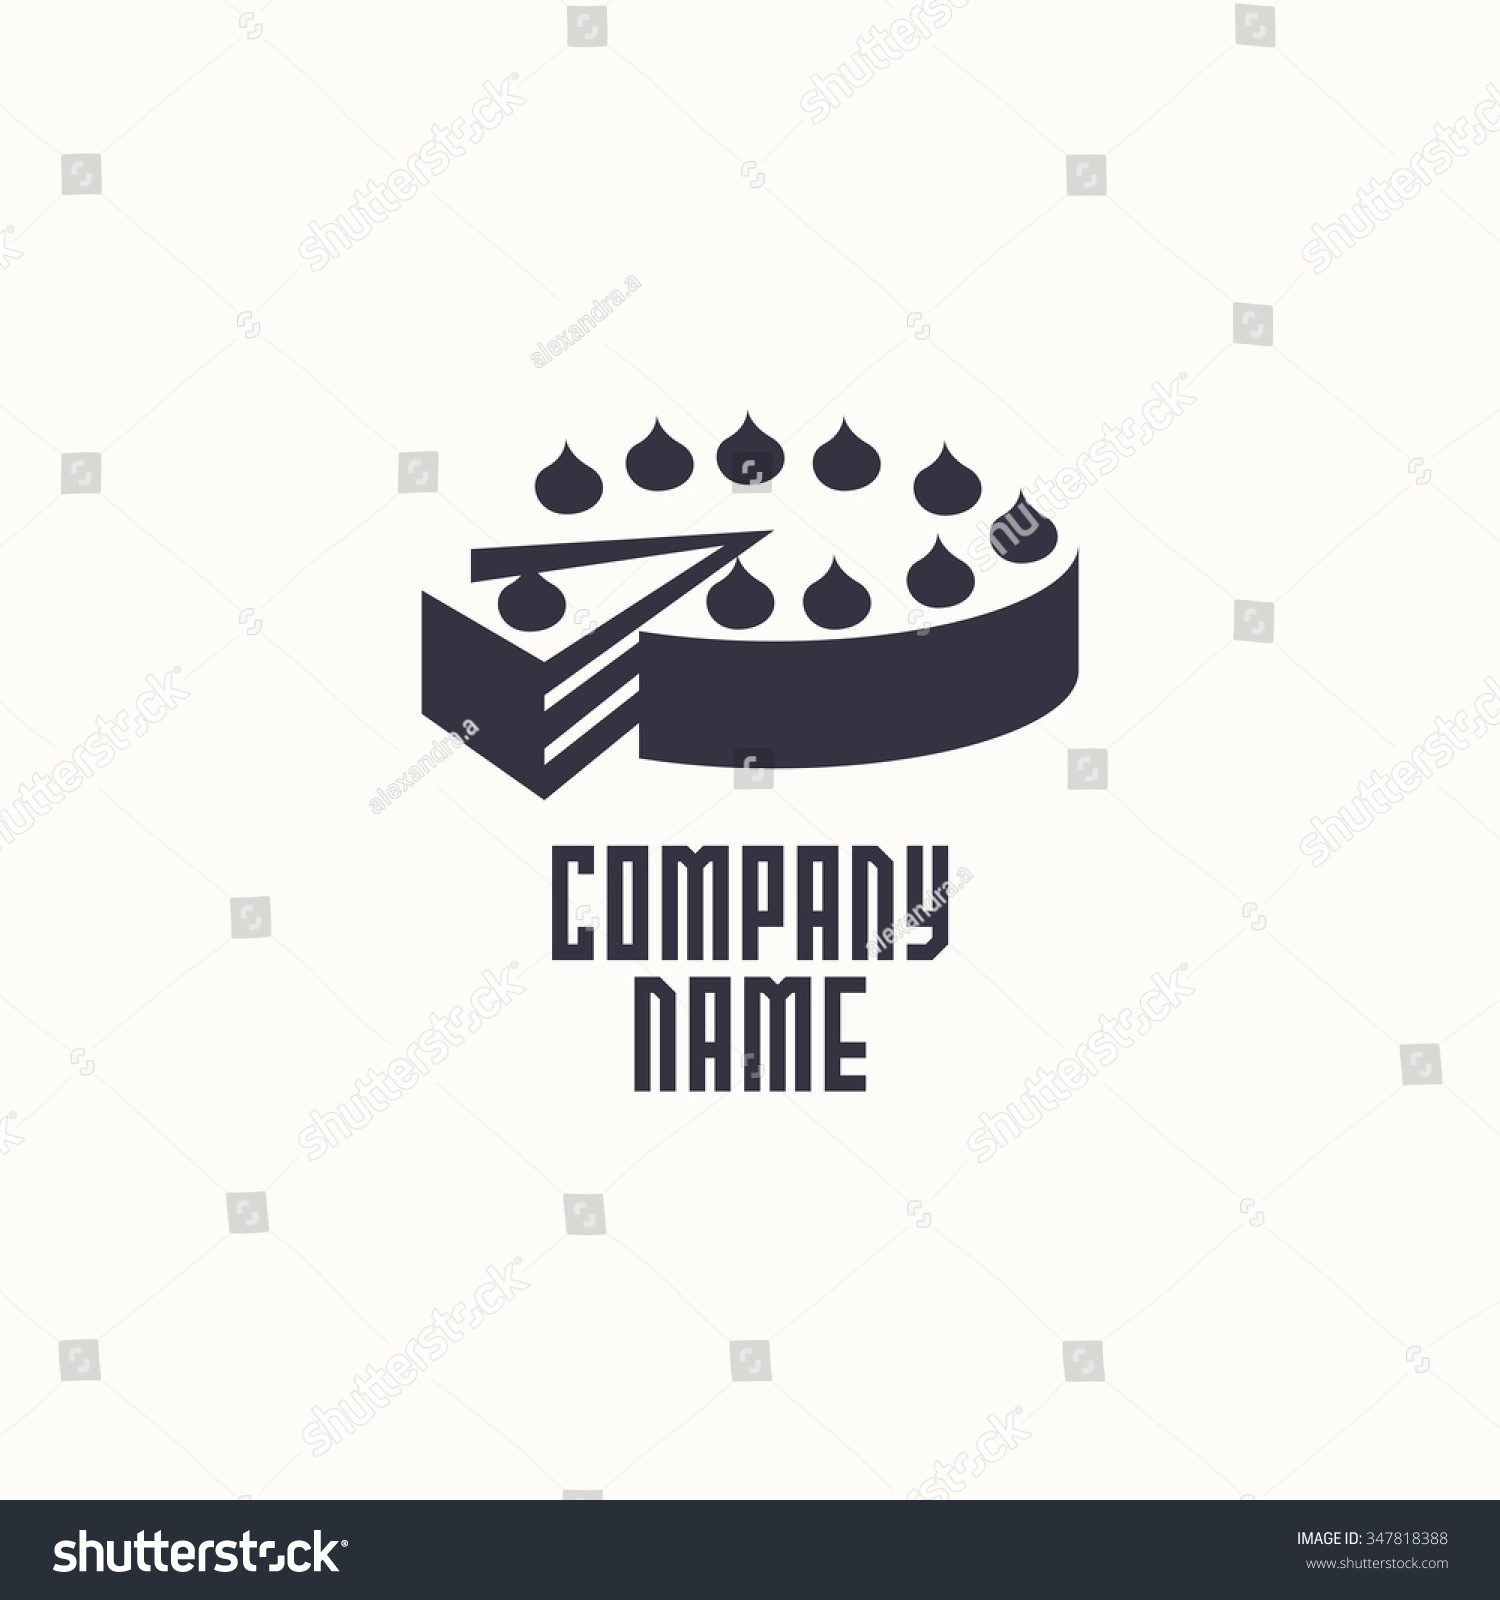 Cake Logo Design Psd : Logo Cake. Vector Design Logo. Logo For Bakery Shop ...